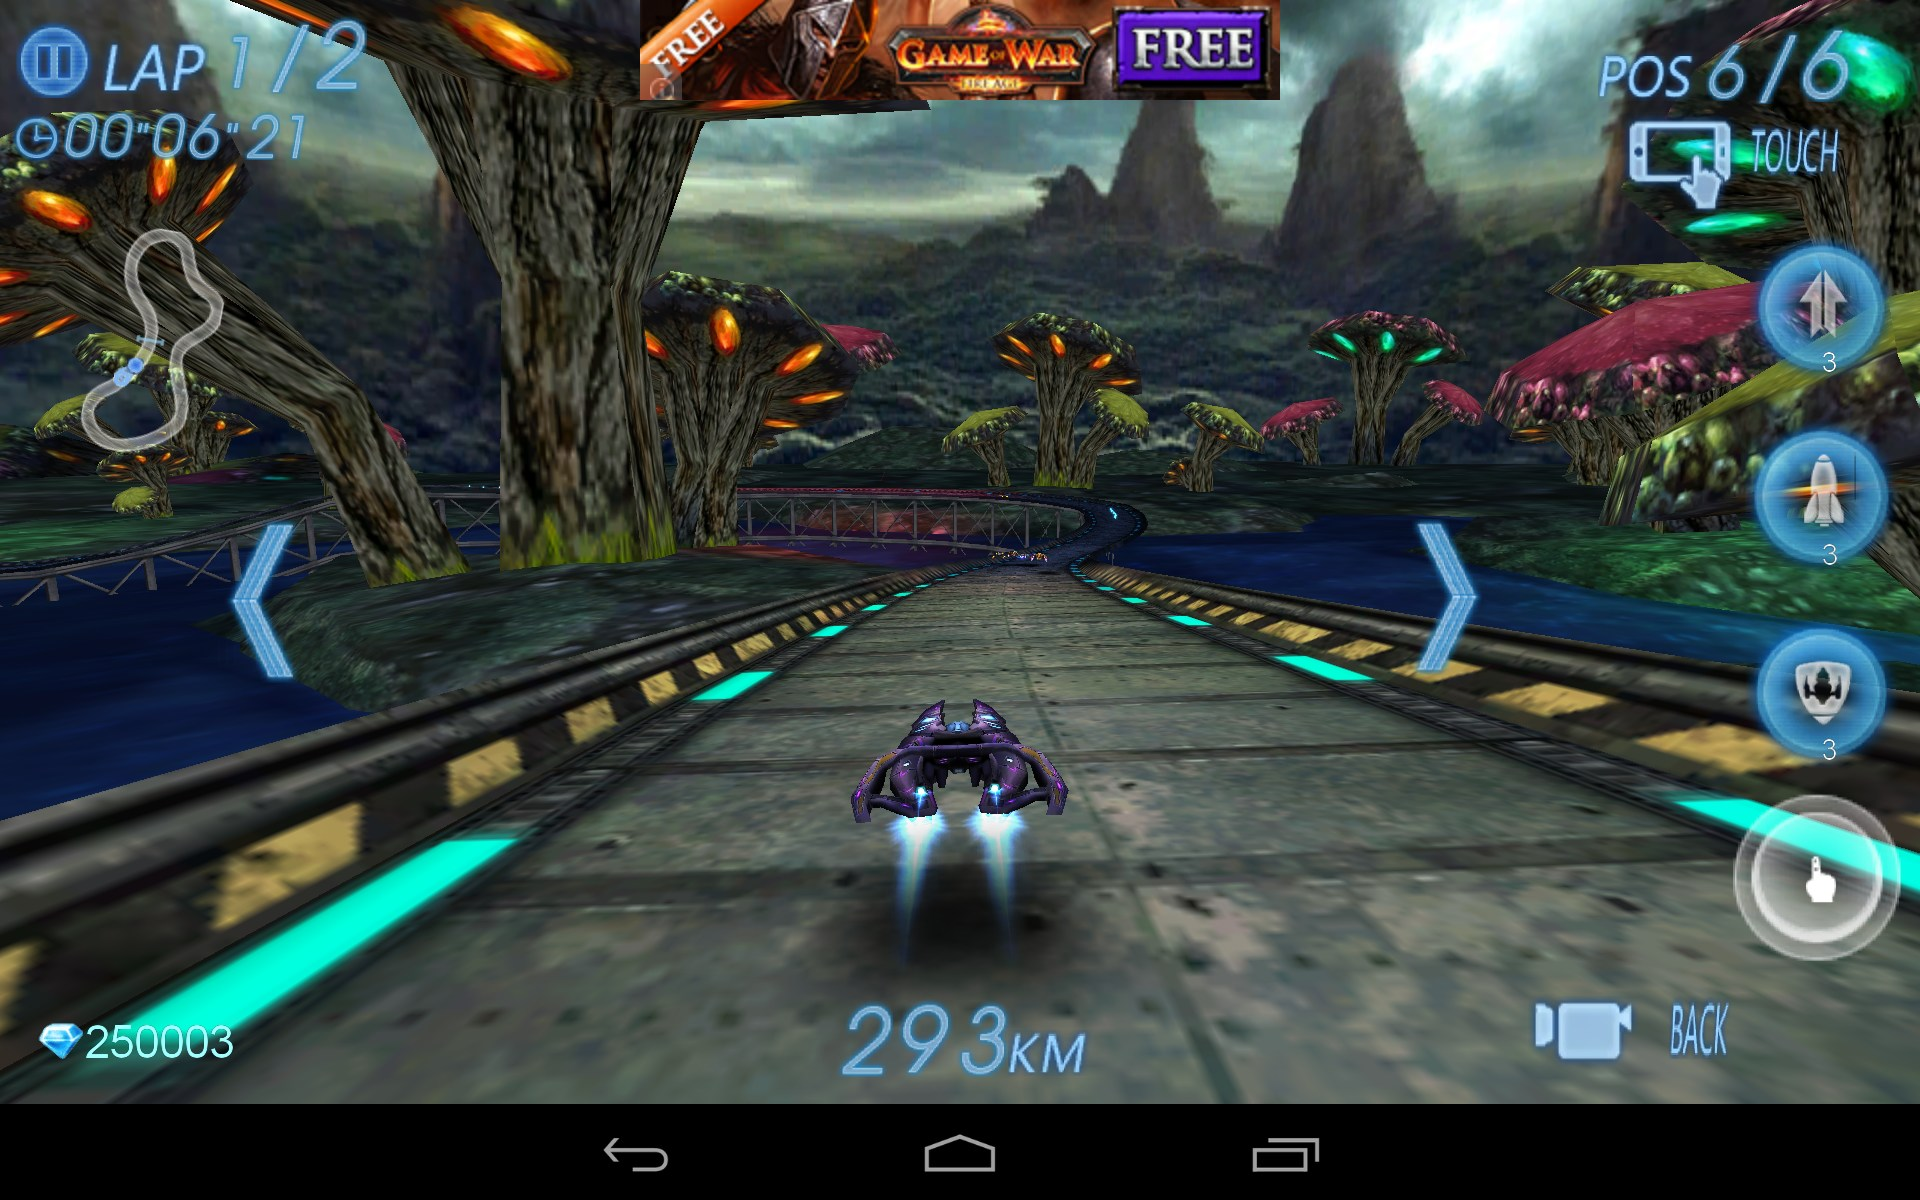 racing games free download for samsung galaxy s duos